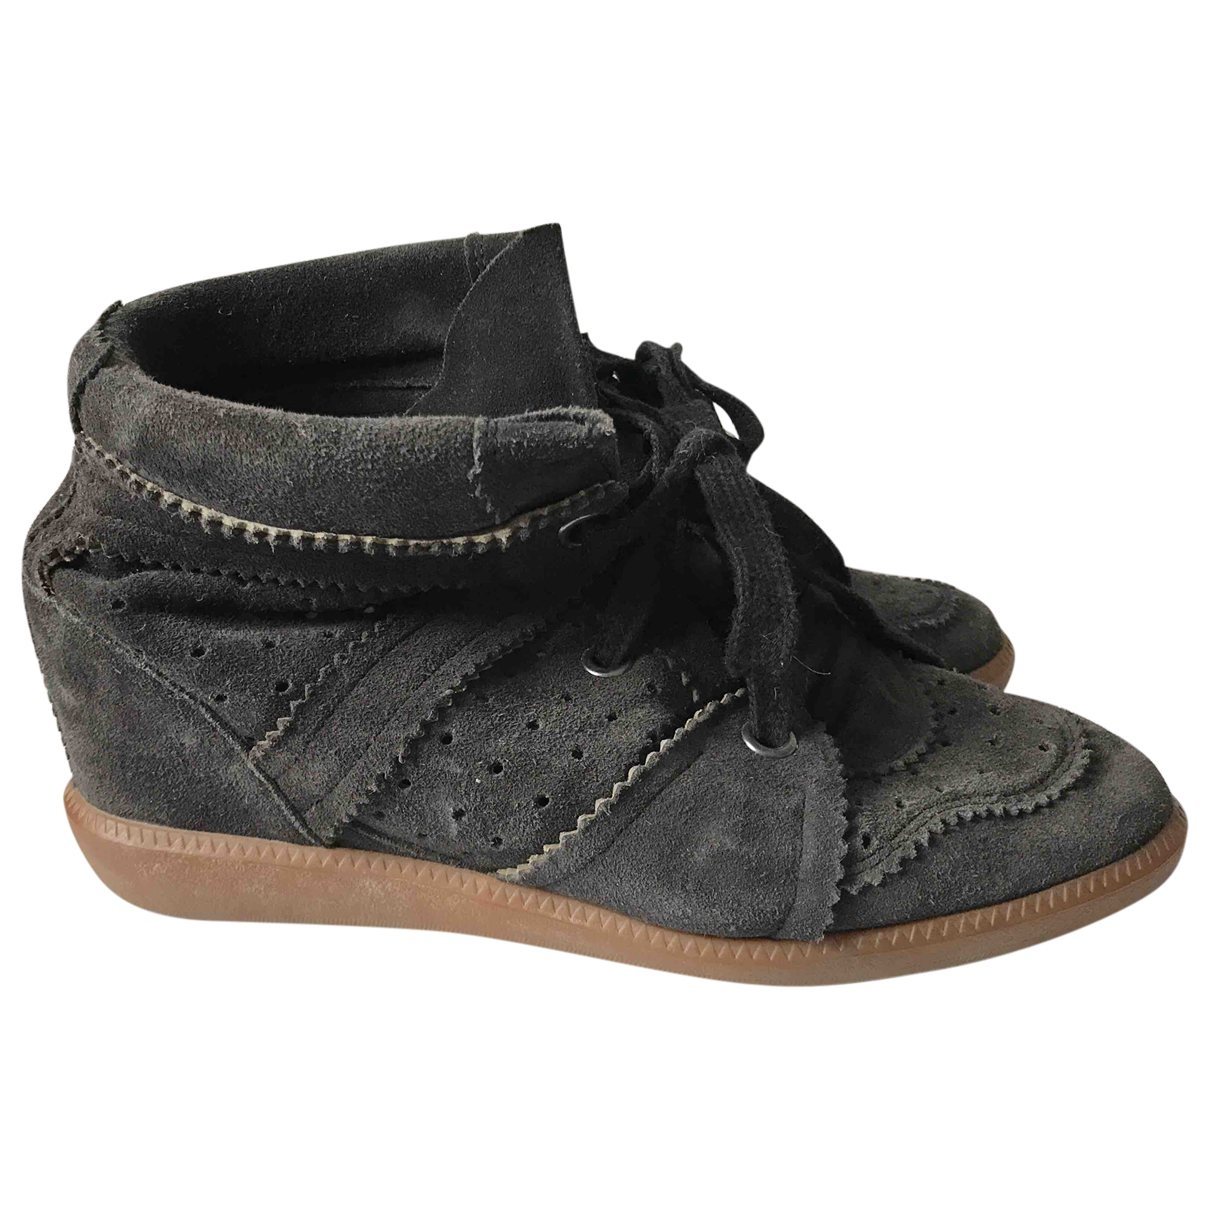 Isabel Marant Betty Black Suede Trainers for Women 40 EU